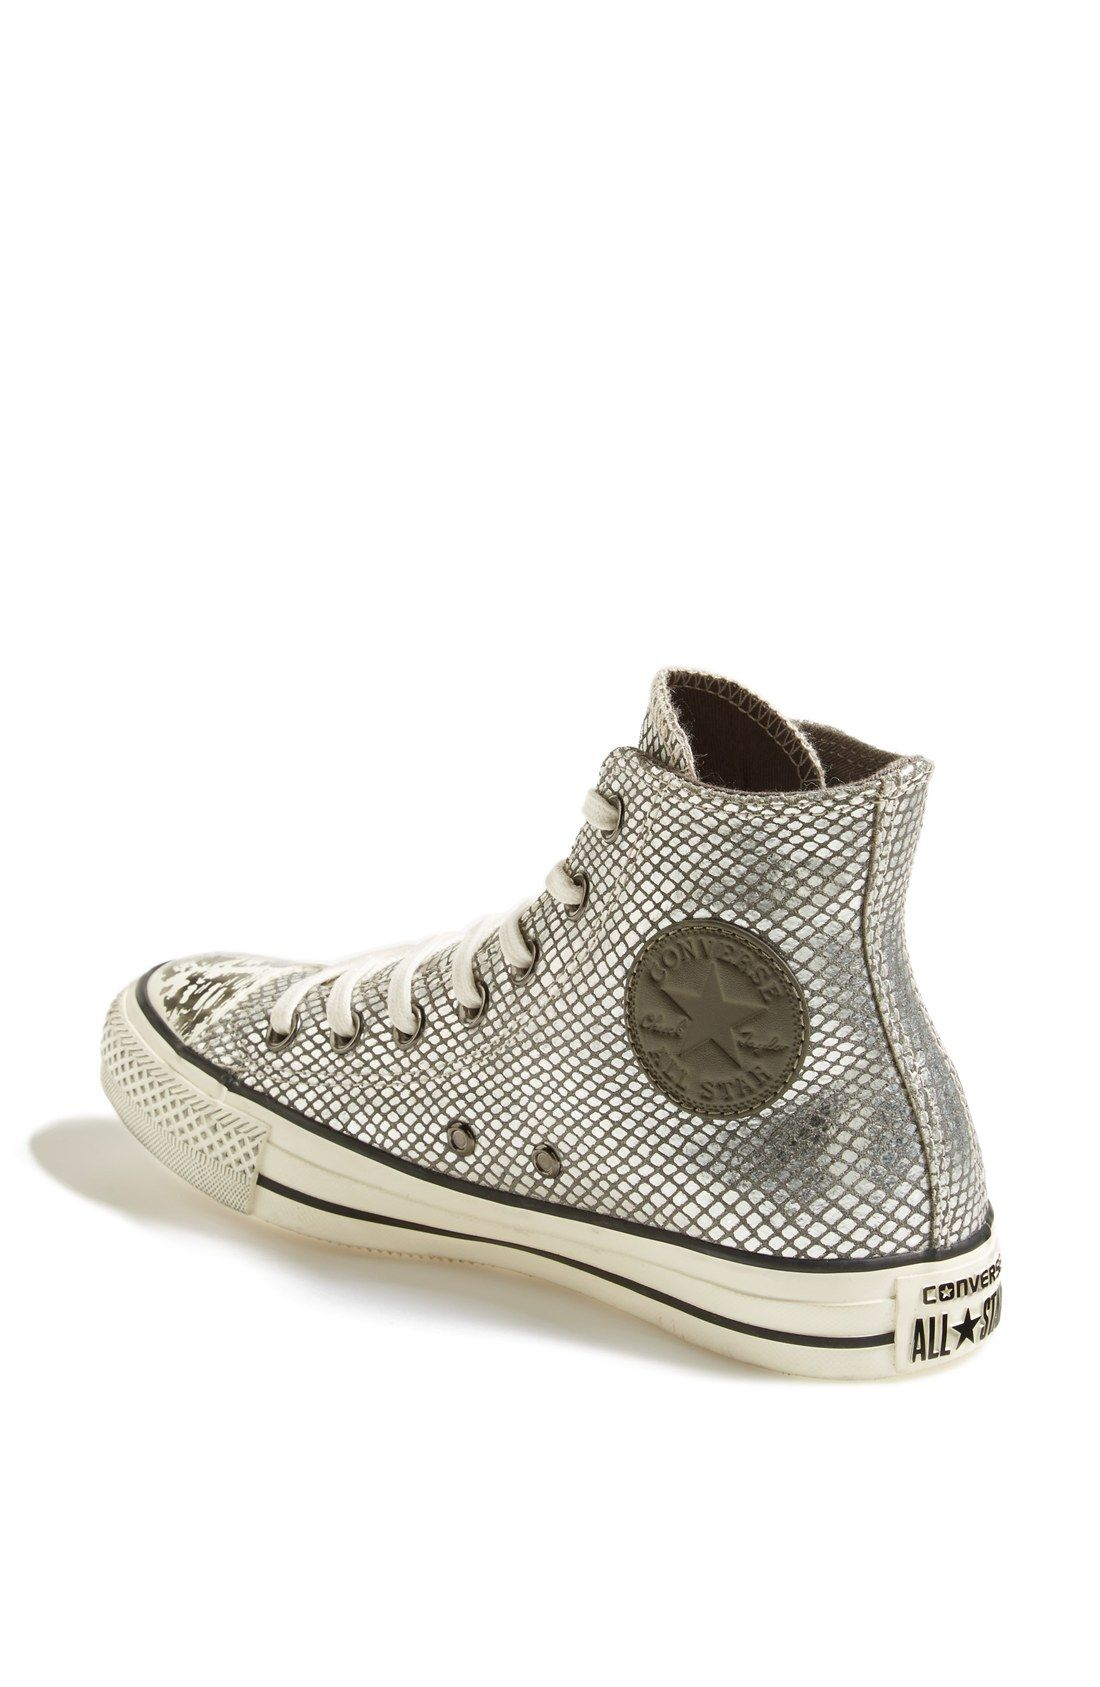 Converse Chuck Taylor® All Star® Snake Print Leather High